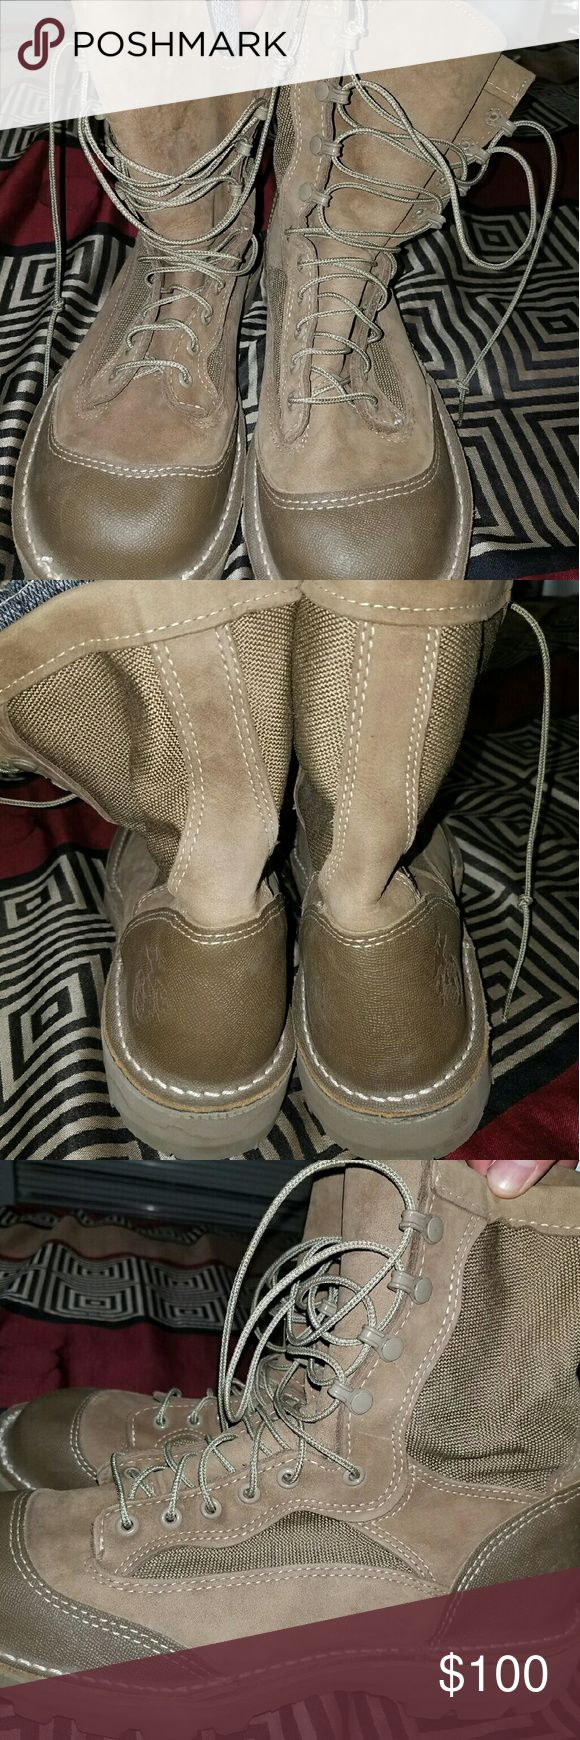 Wellco USMC RAT boots Khaki, made in USA, all weather proof insulation, never been worn. wellco  Shoes Boots